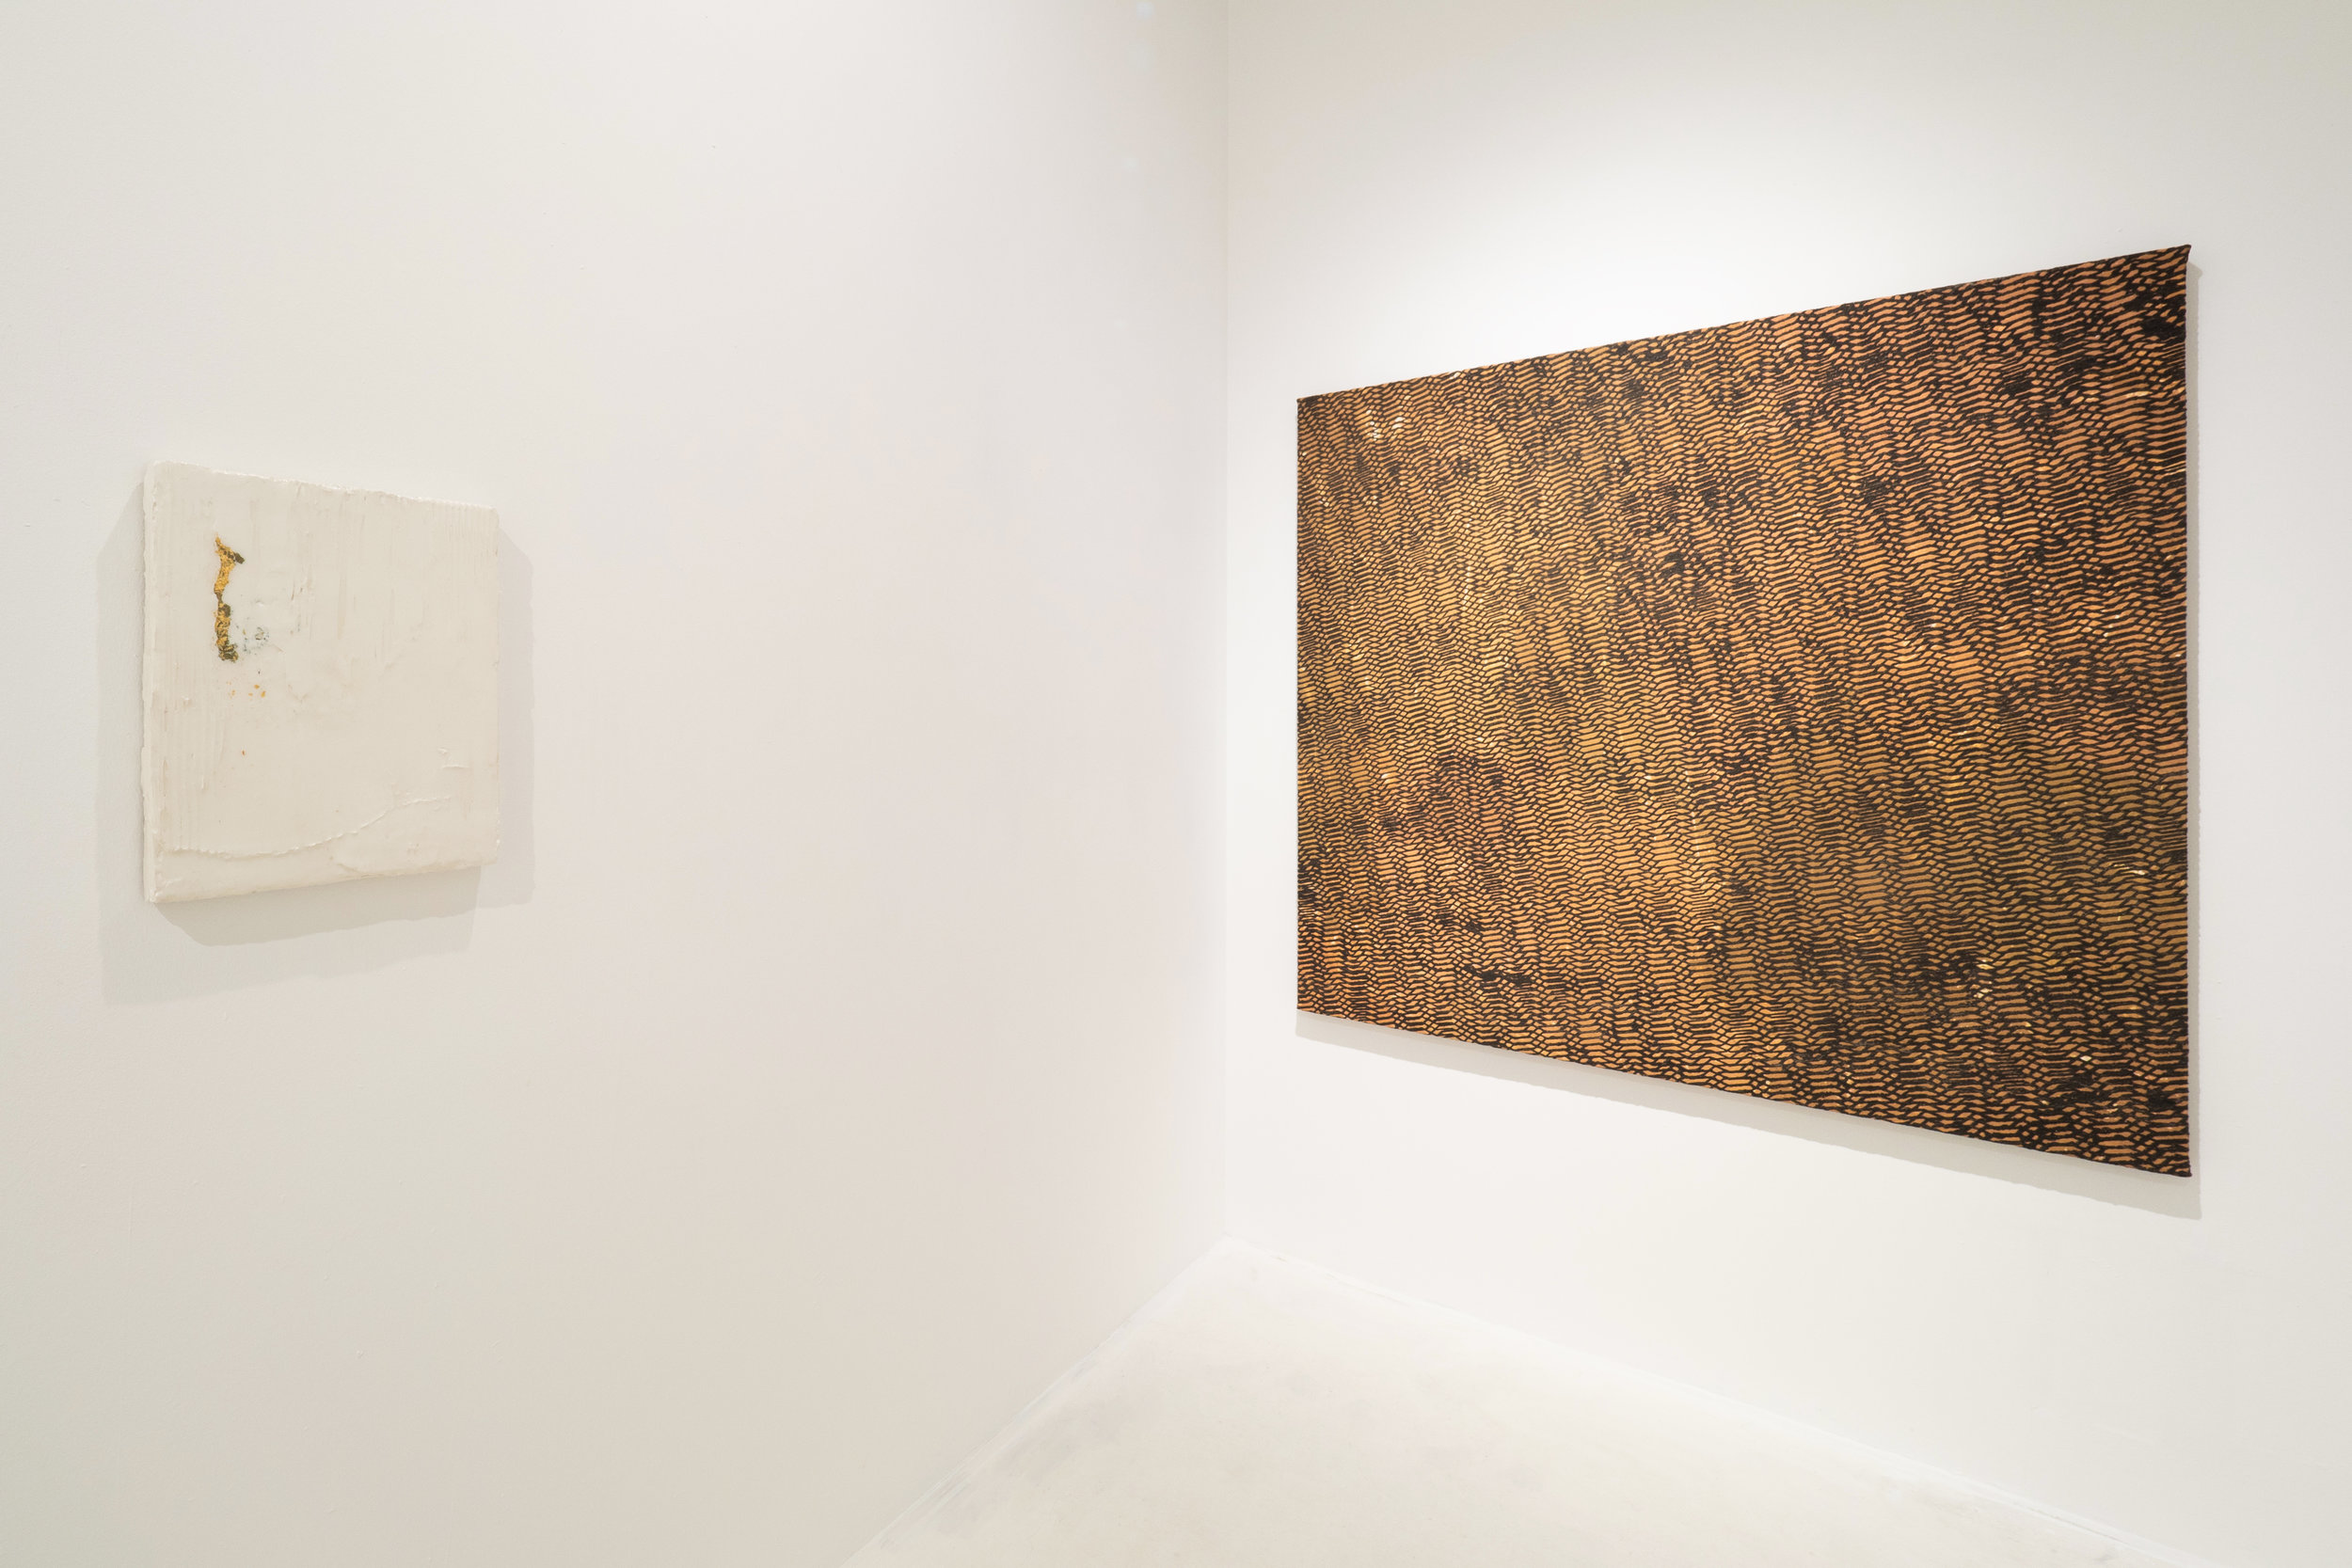 Installation View of 'Moonshard' by Ben Loong and 'kElok-kElok' by Zulkifli.jpg